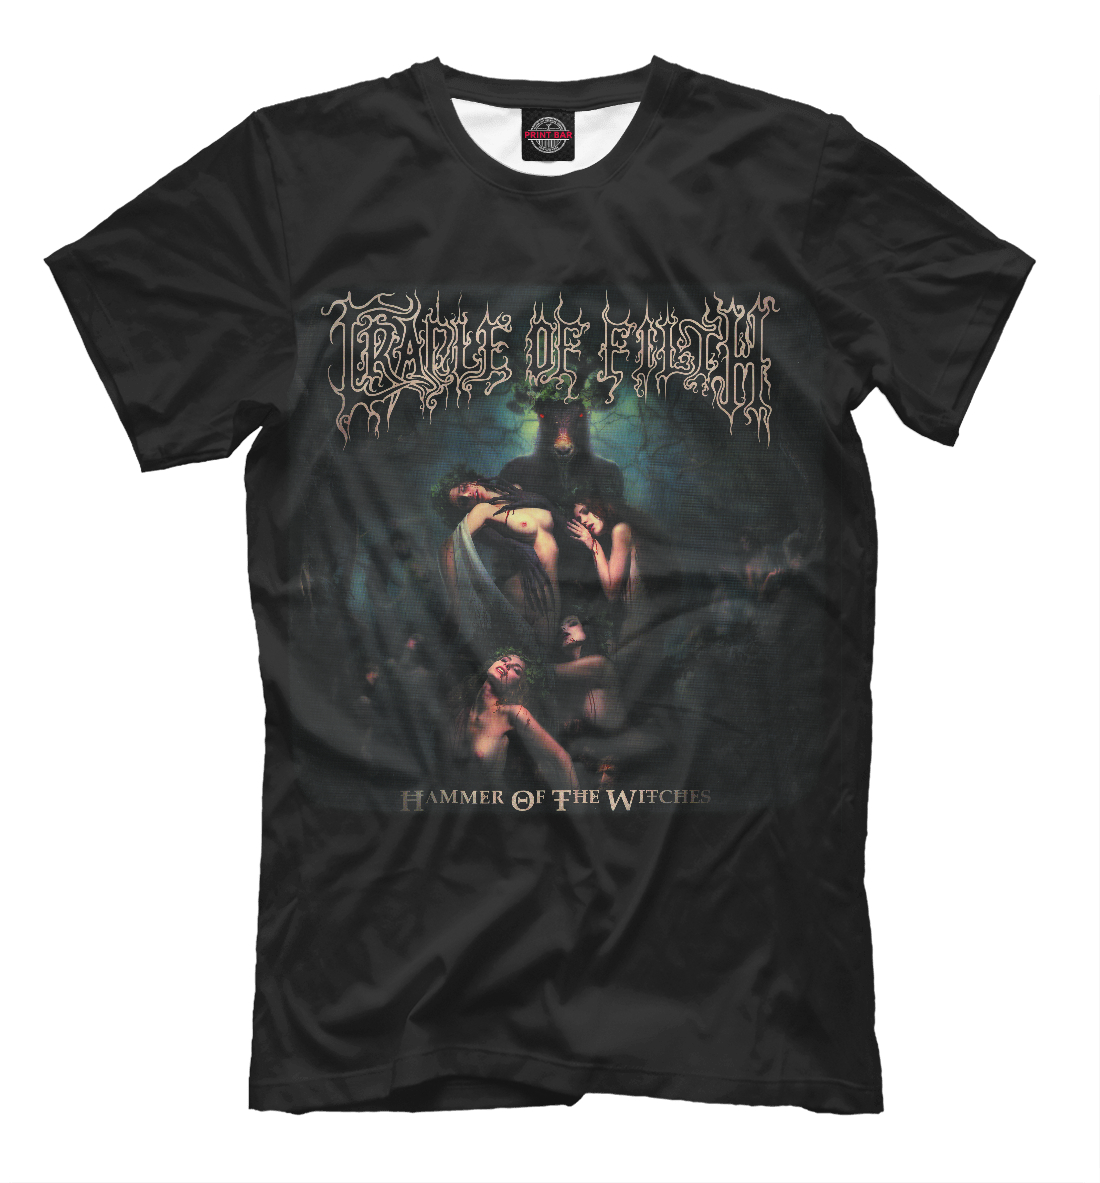 Cradle of Filth: Hammer of the Witches cradle of filth hammer of the witches